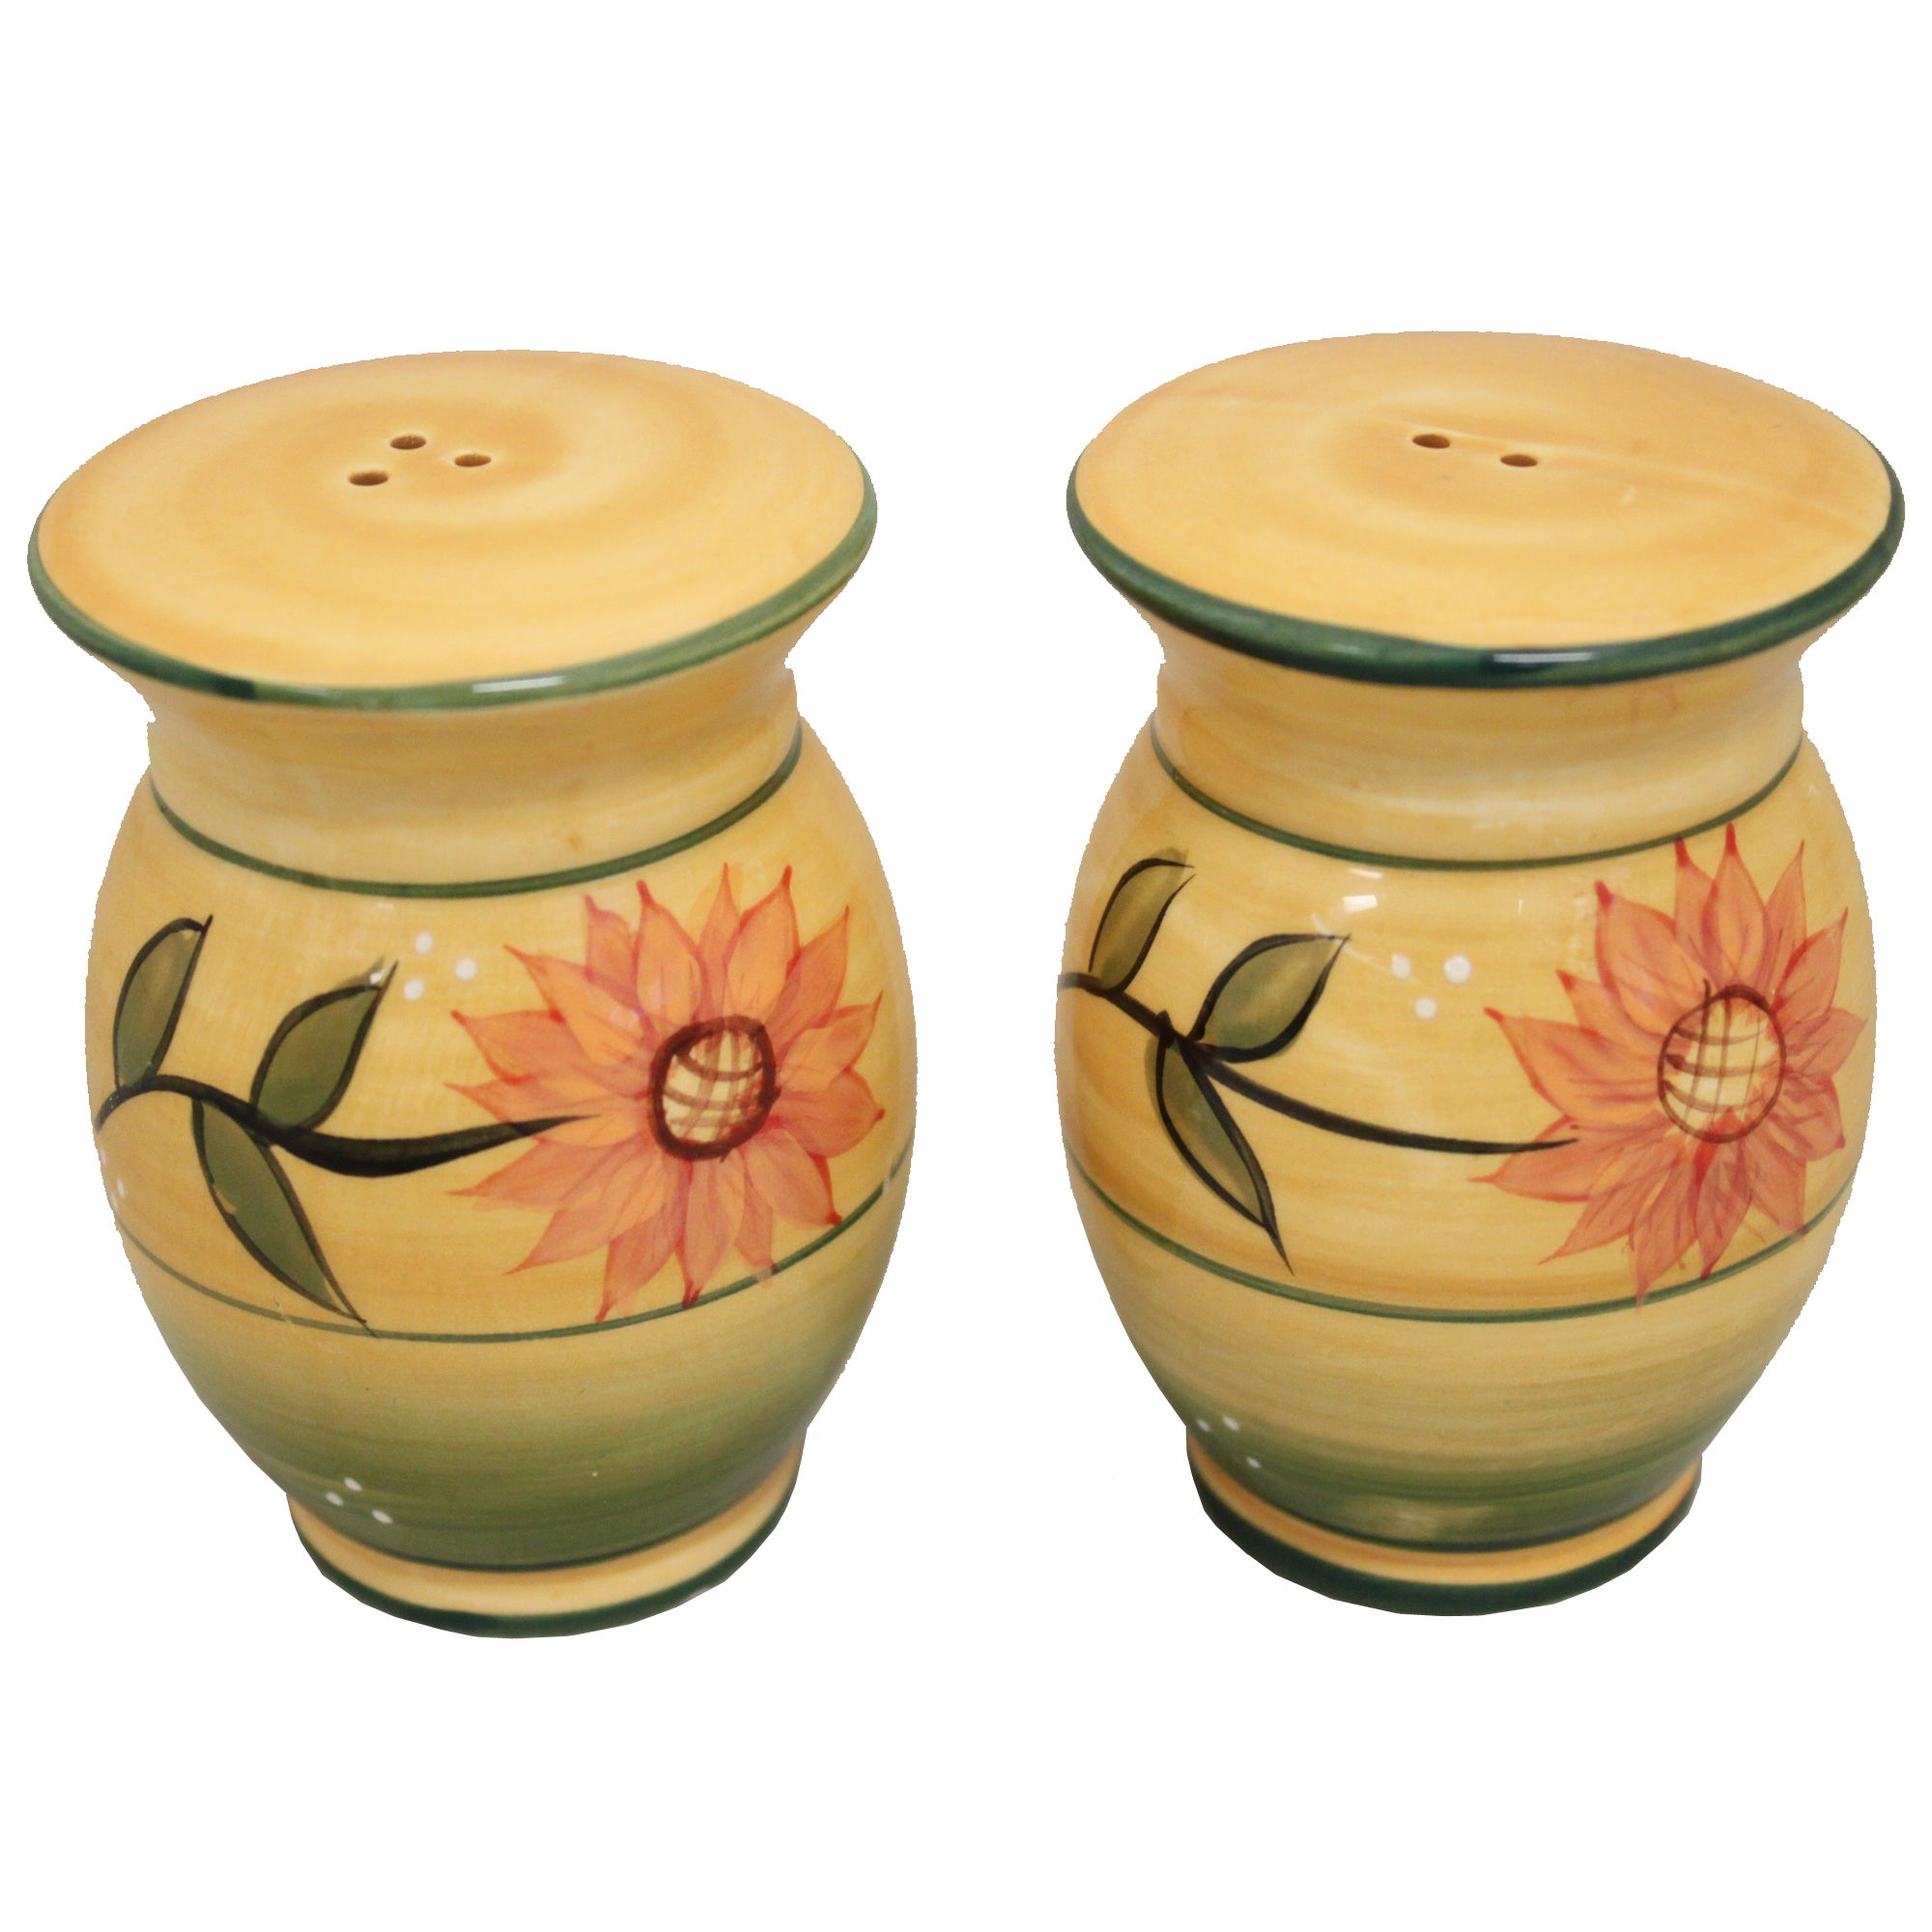 Sunflower Garden Collection Deluxe Handcrafted Salt and Pepper Shaker Set